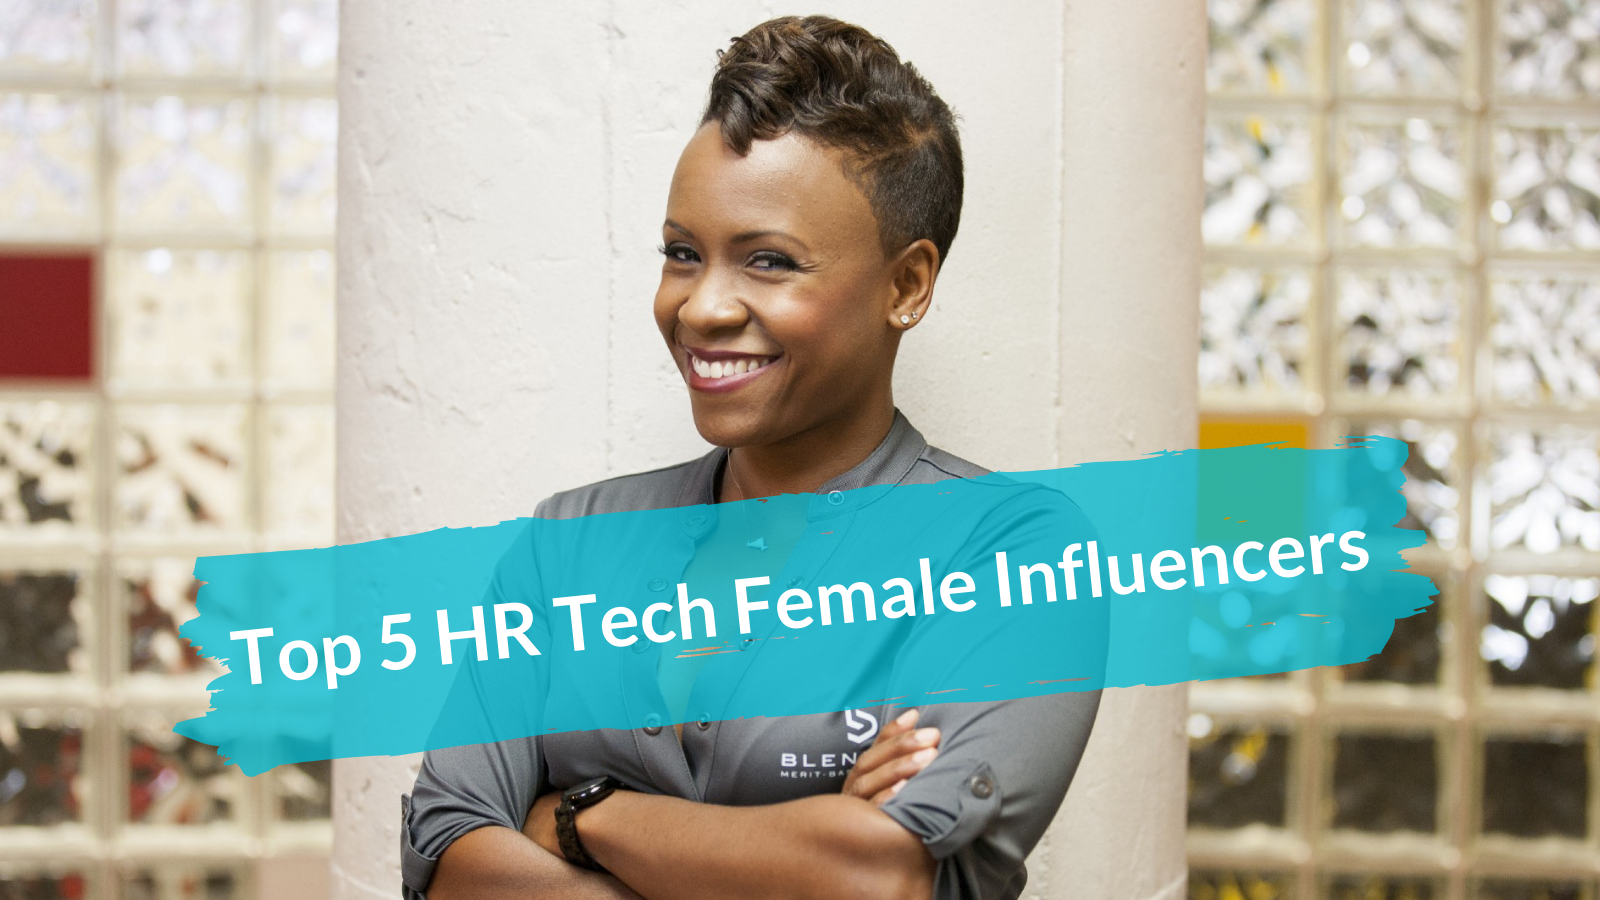 0 Top 5 HR Tech Female Influencers